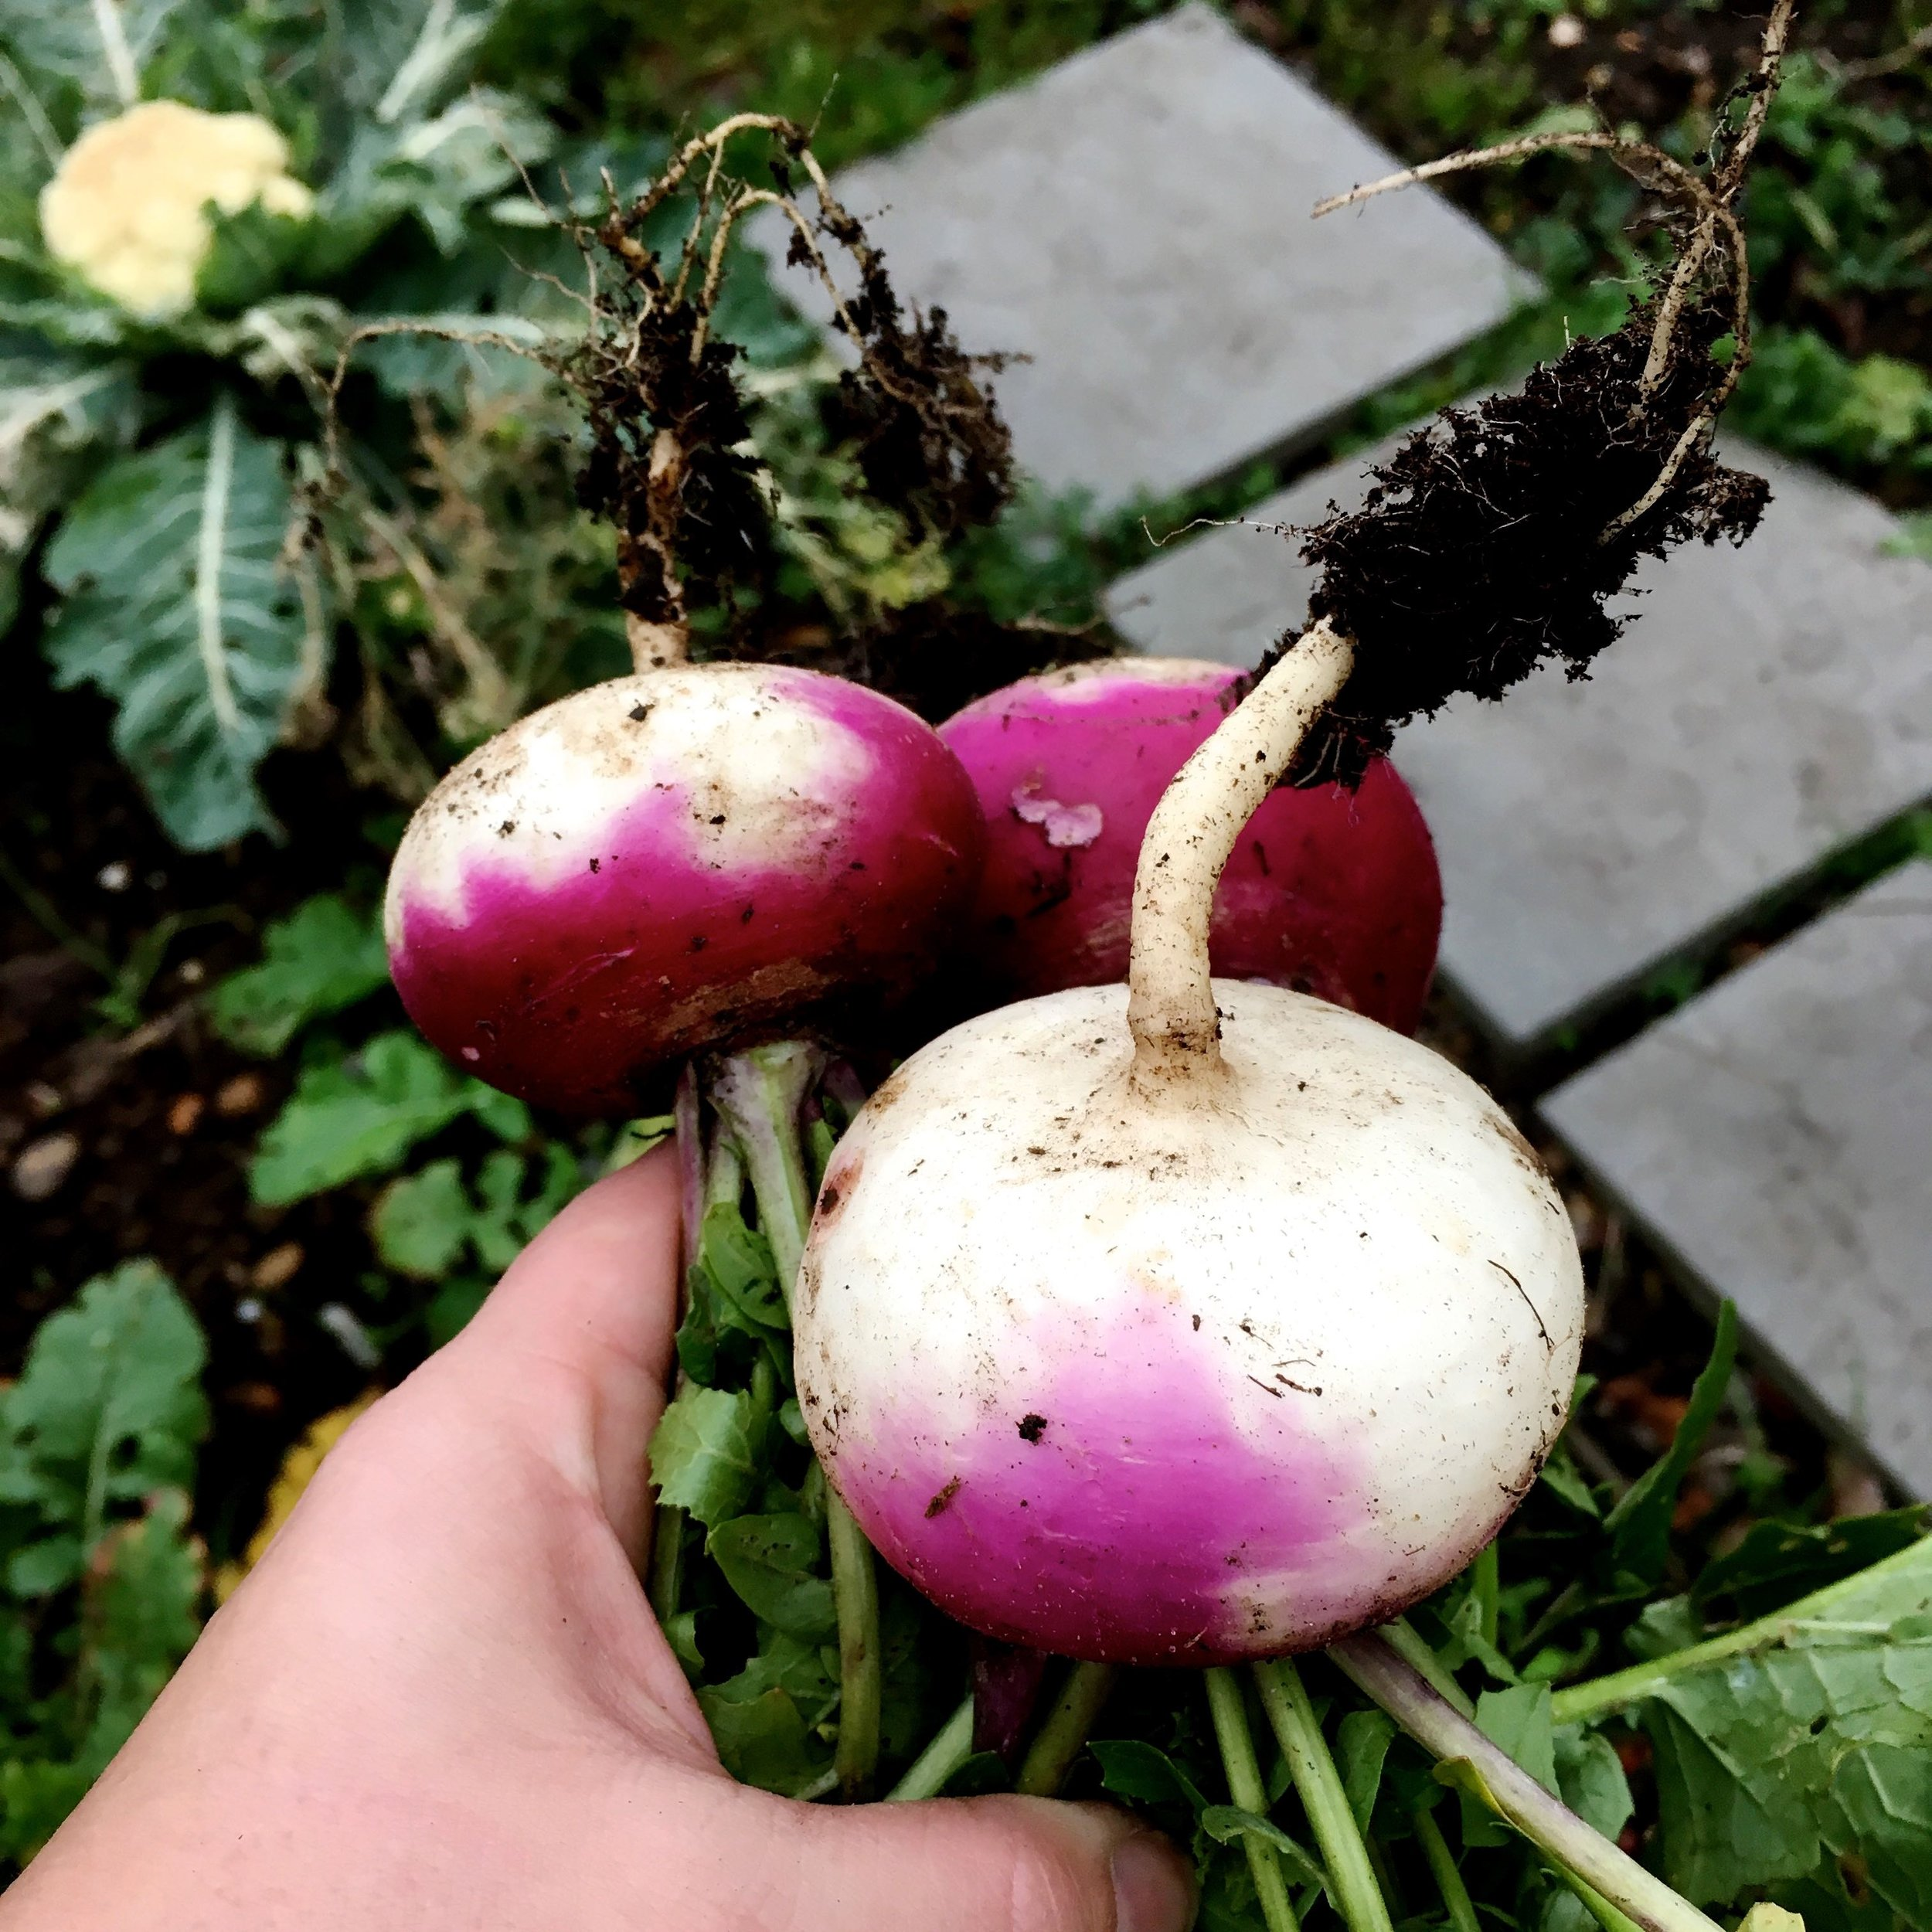 Freshly pulled turnips on the allotment, and there's more to come too.